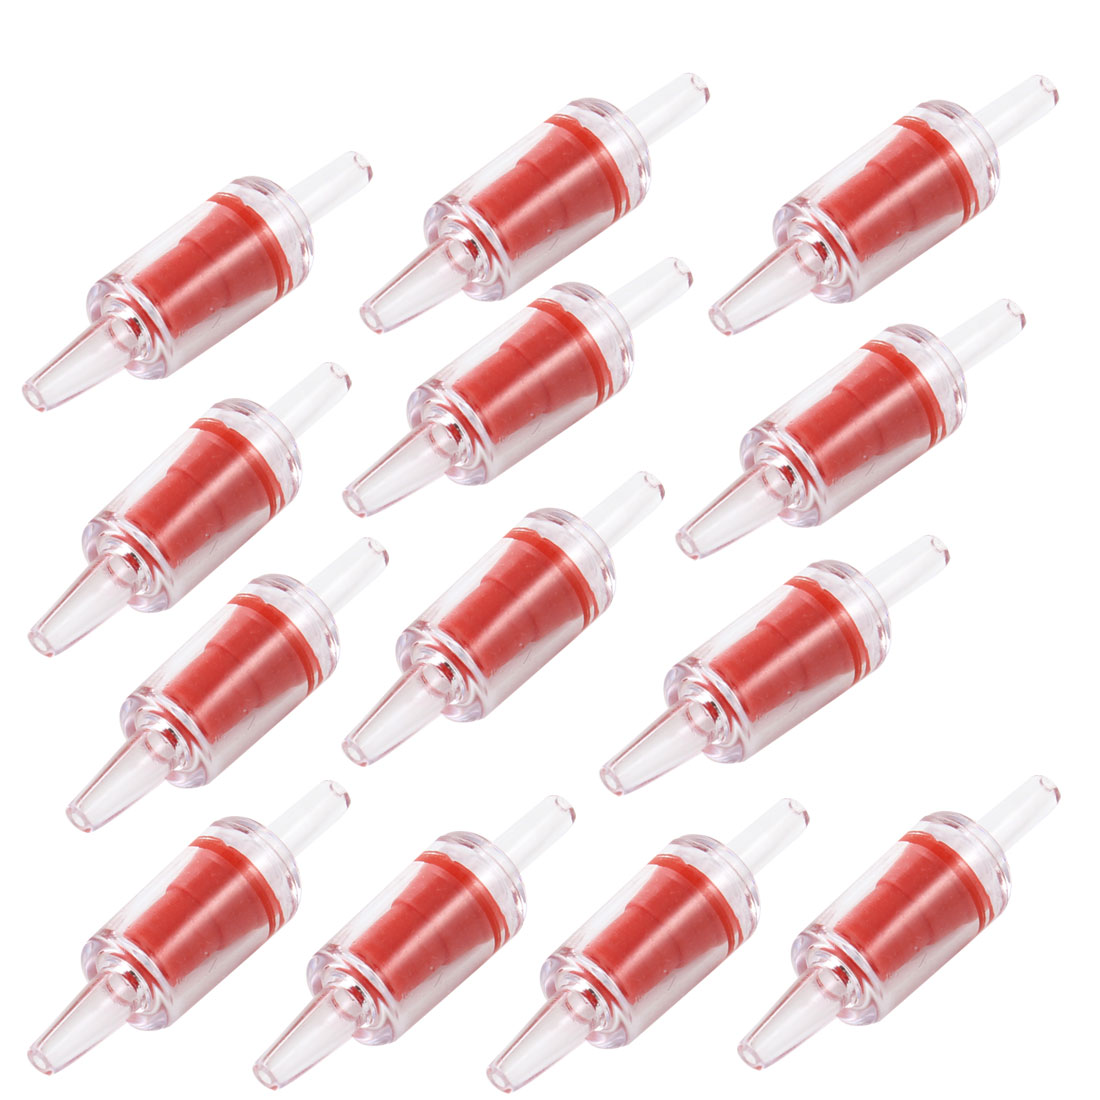 13 Pcs Red Clear Plastic One Way Non-return Check Valves for Fish Tank Aquarium